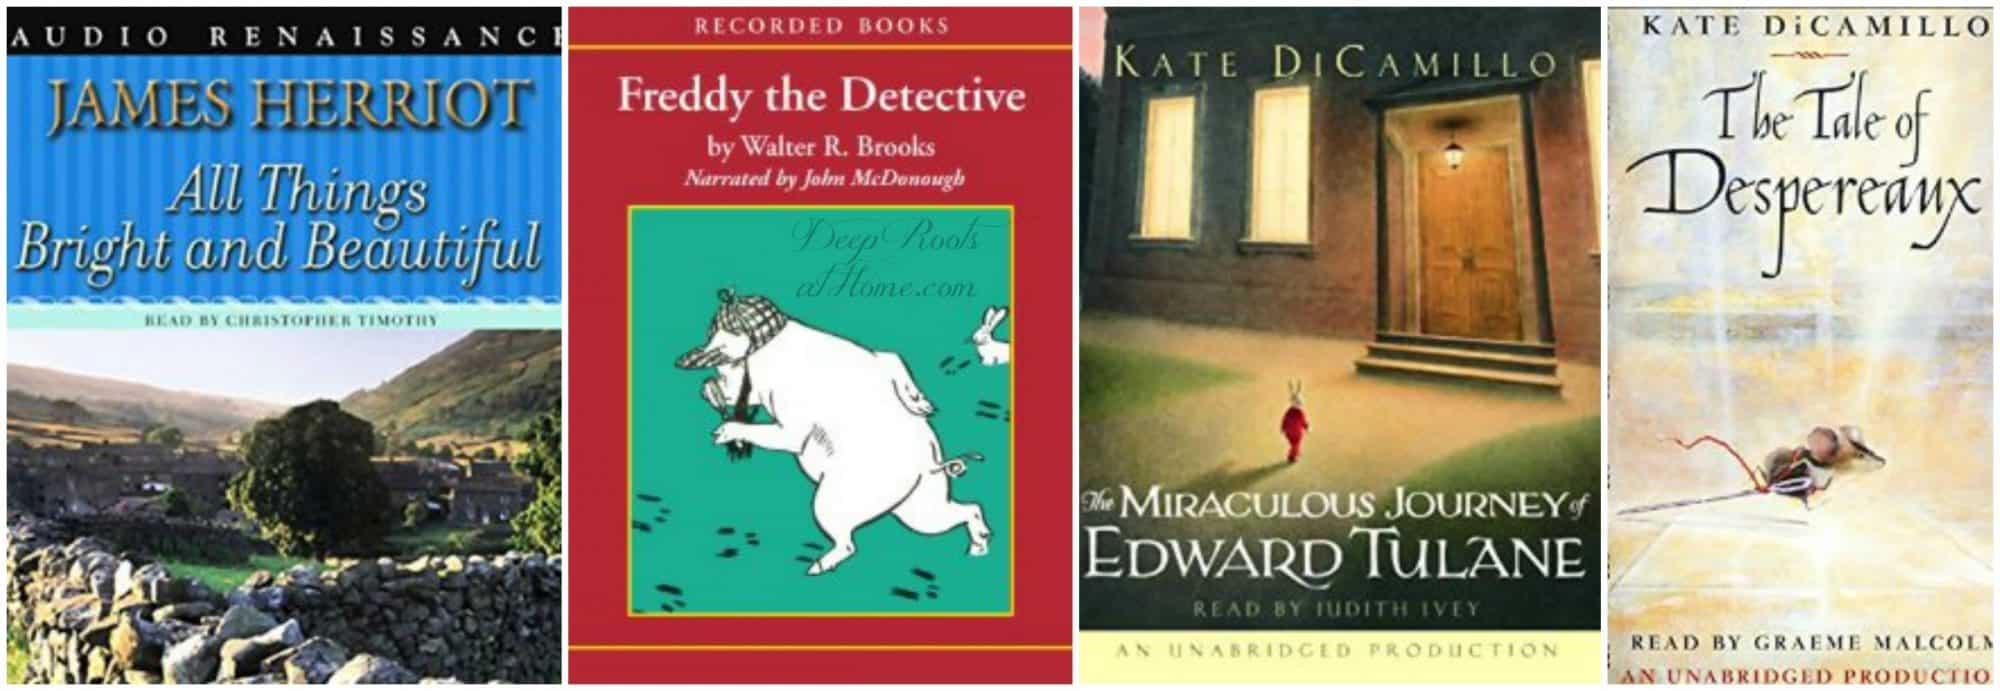 4 audiobooks including The Miraculous Journey of Edward Tulane, Kate DiCamillo